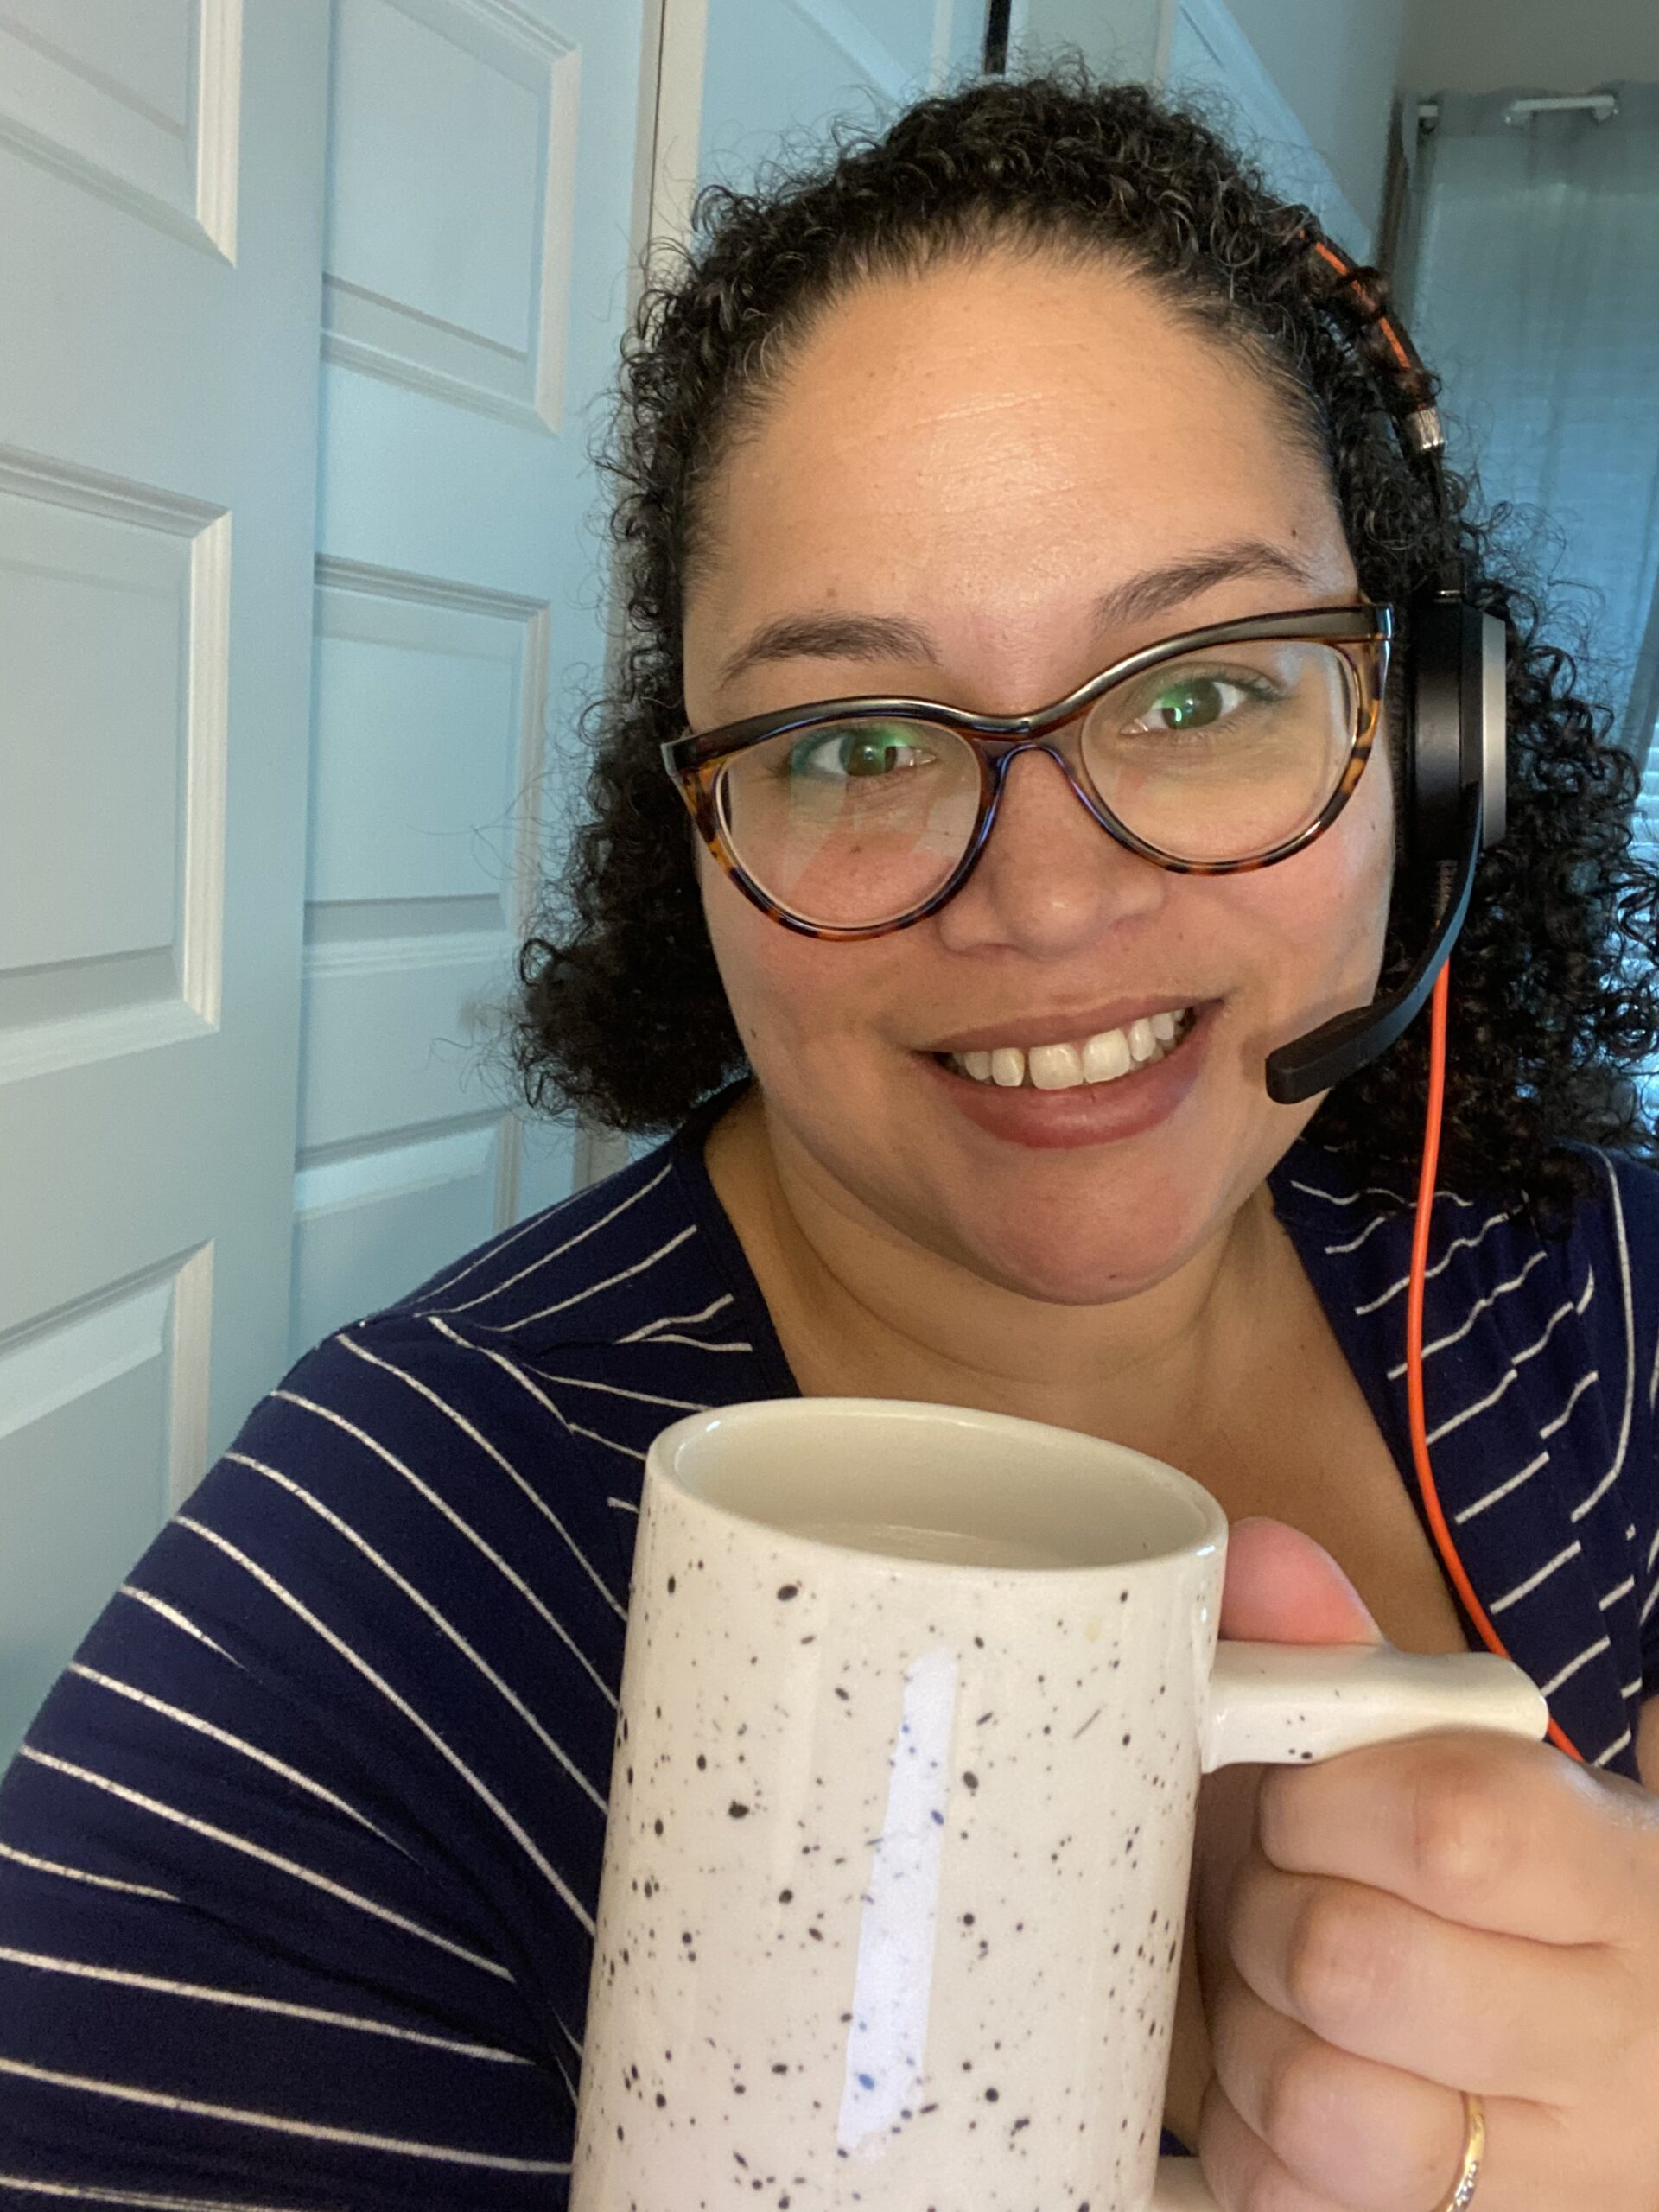 Side Hustle, Side Gig Life: My Independent Contractor Story